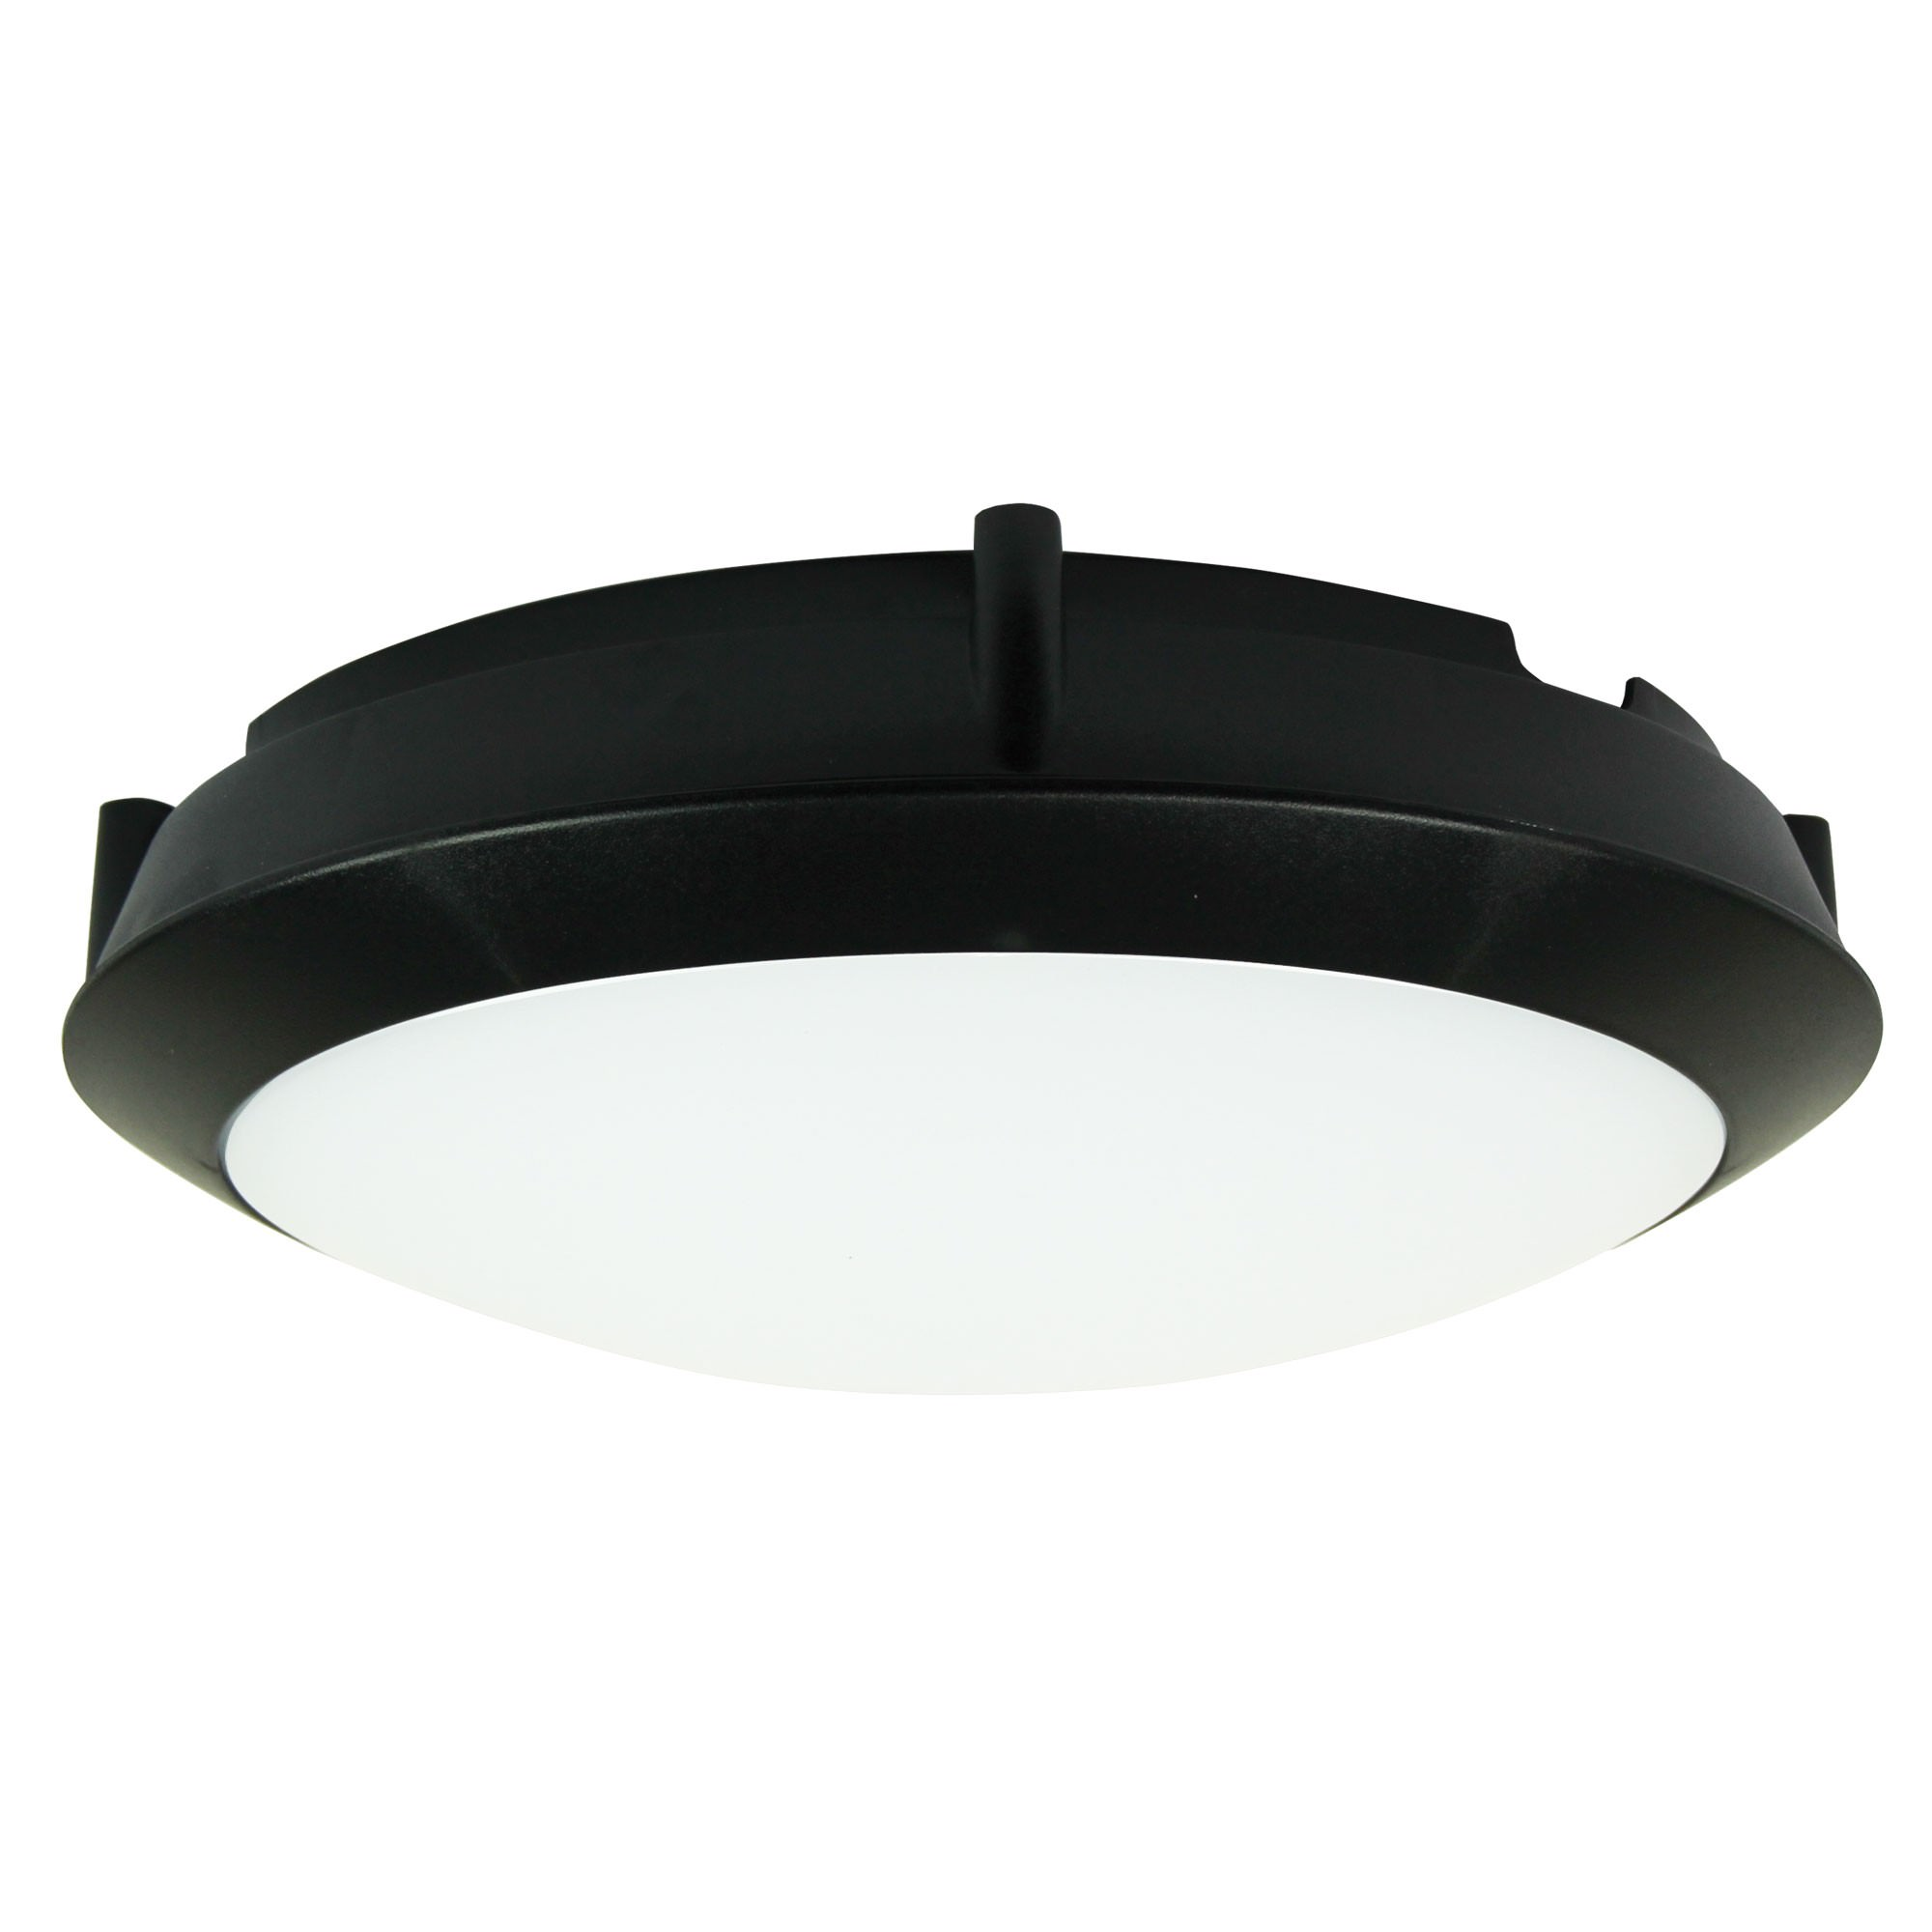 Duro IP66 Exterior LED Oyster Light, 30cm, Round, Black